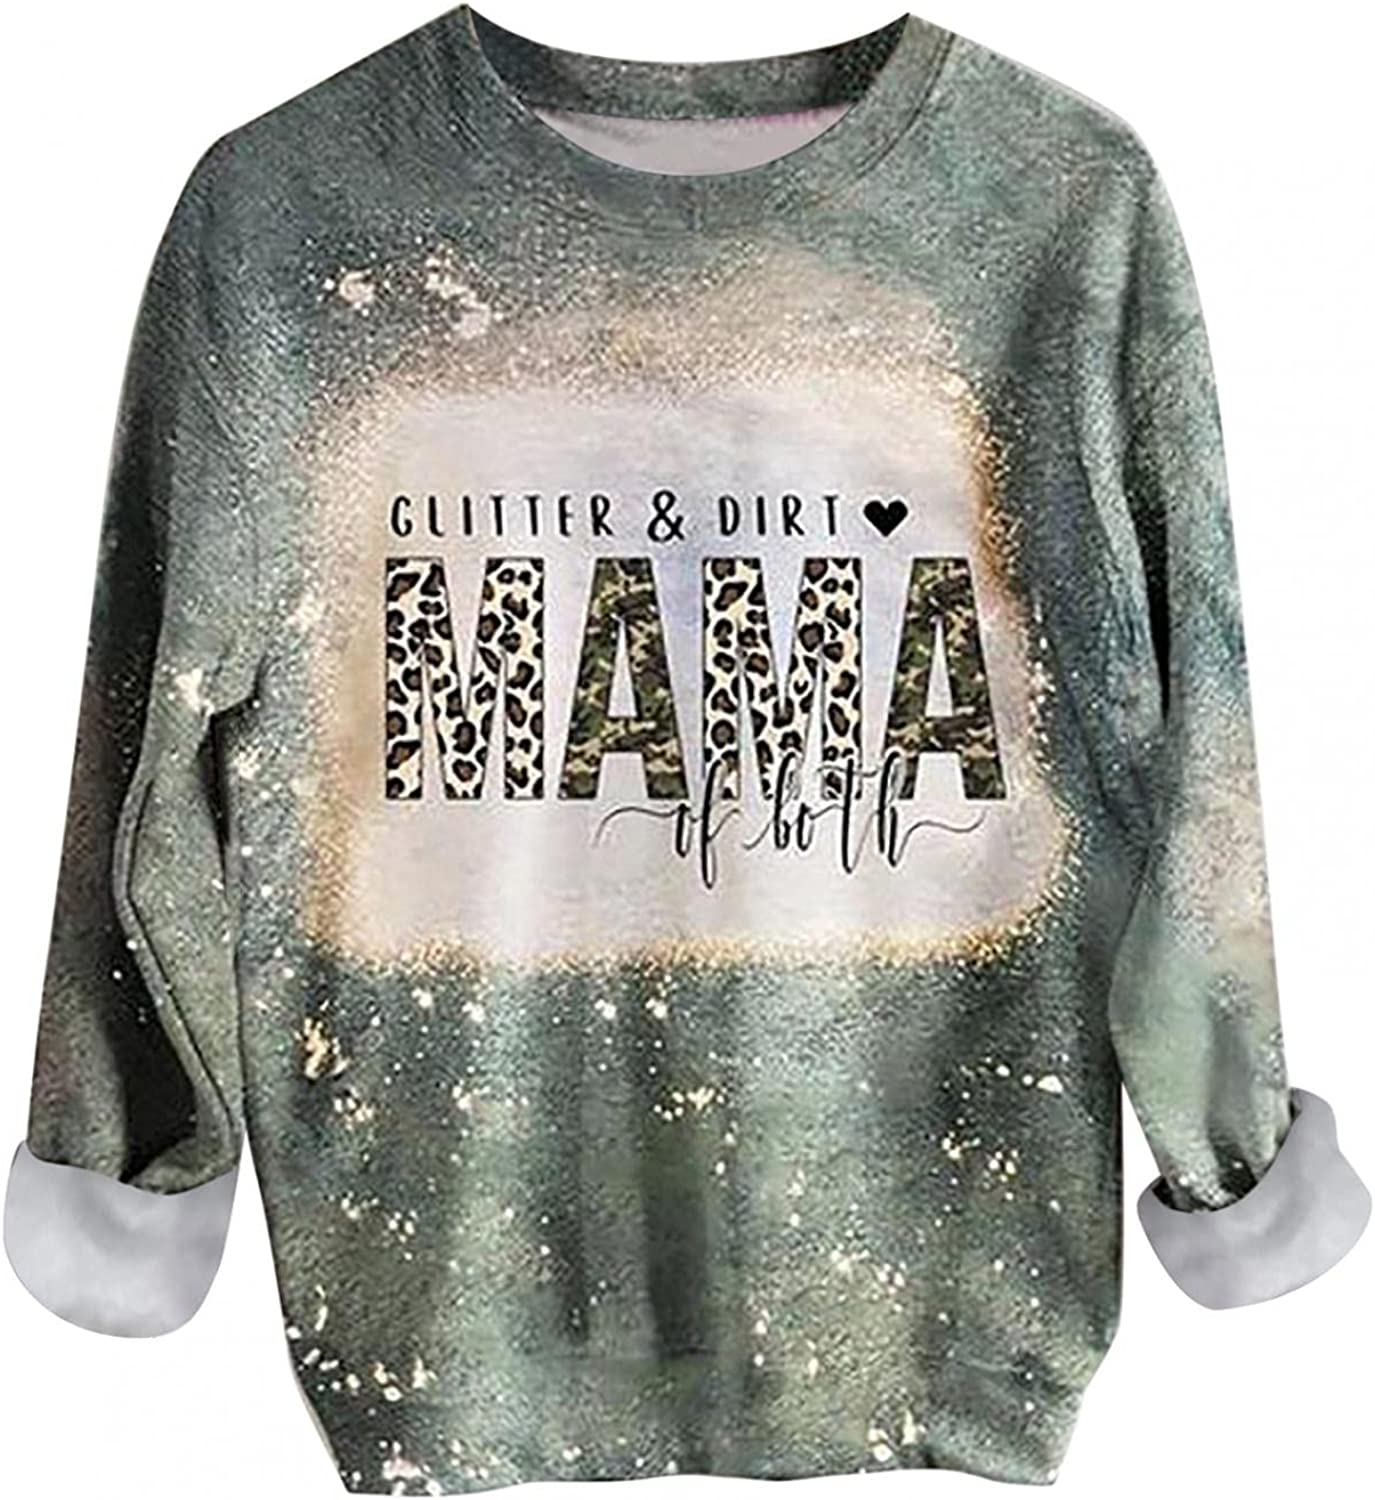 Halloween Sweaters for Women, Womens Tie Dye Rainbow Crewneck Long Sleeve Shirts Comfy Loose Pullover Tops